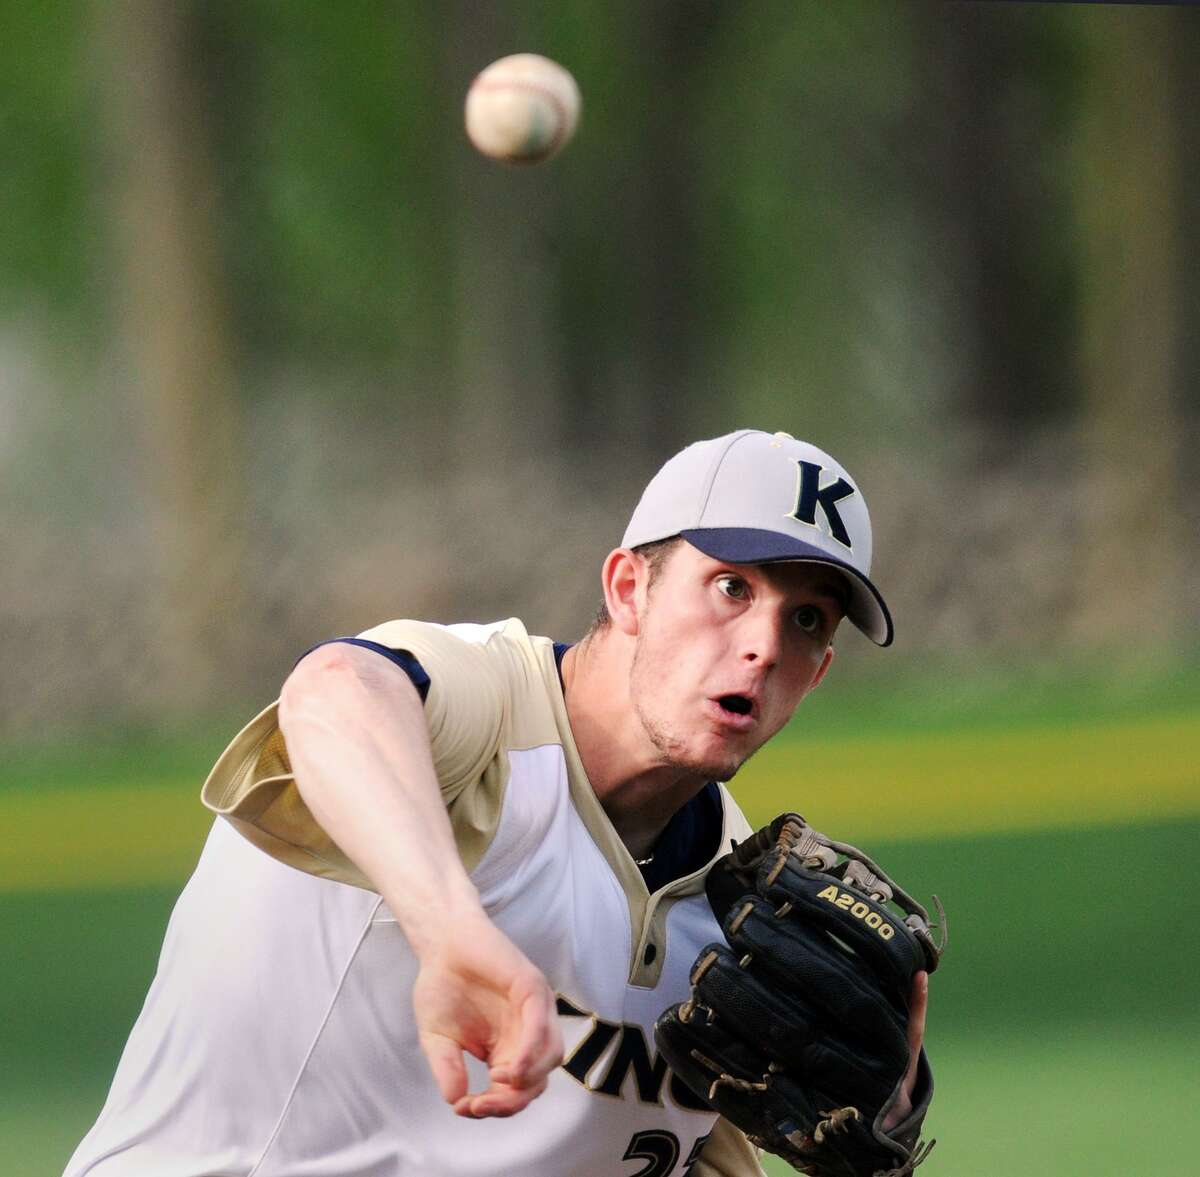 King School pitcher Renn Lints throws during a game against Brunswick School on May 4 in Greenwich. The Vikings finished the regular season with a 12-2 record.